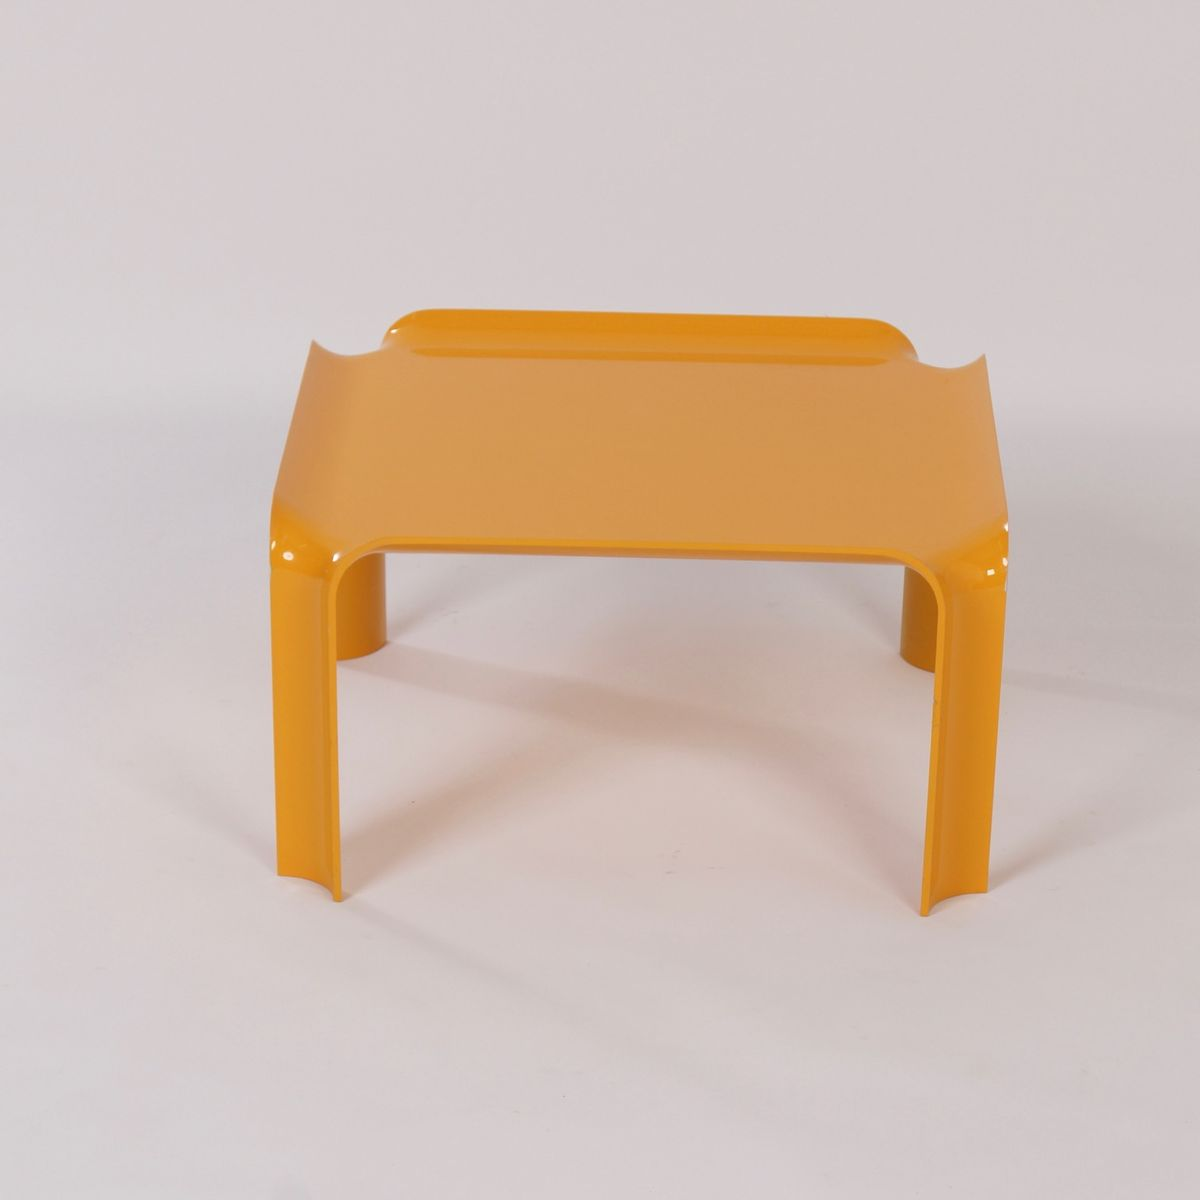 Small Yellow 877 Coffee Table By Pierre Paulin For Artifort 1960s For Sale At Pamono